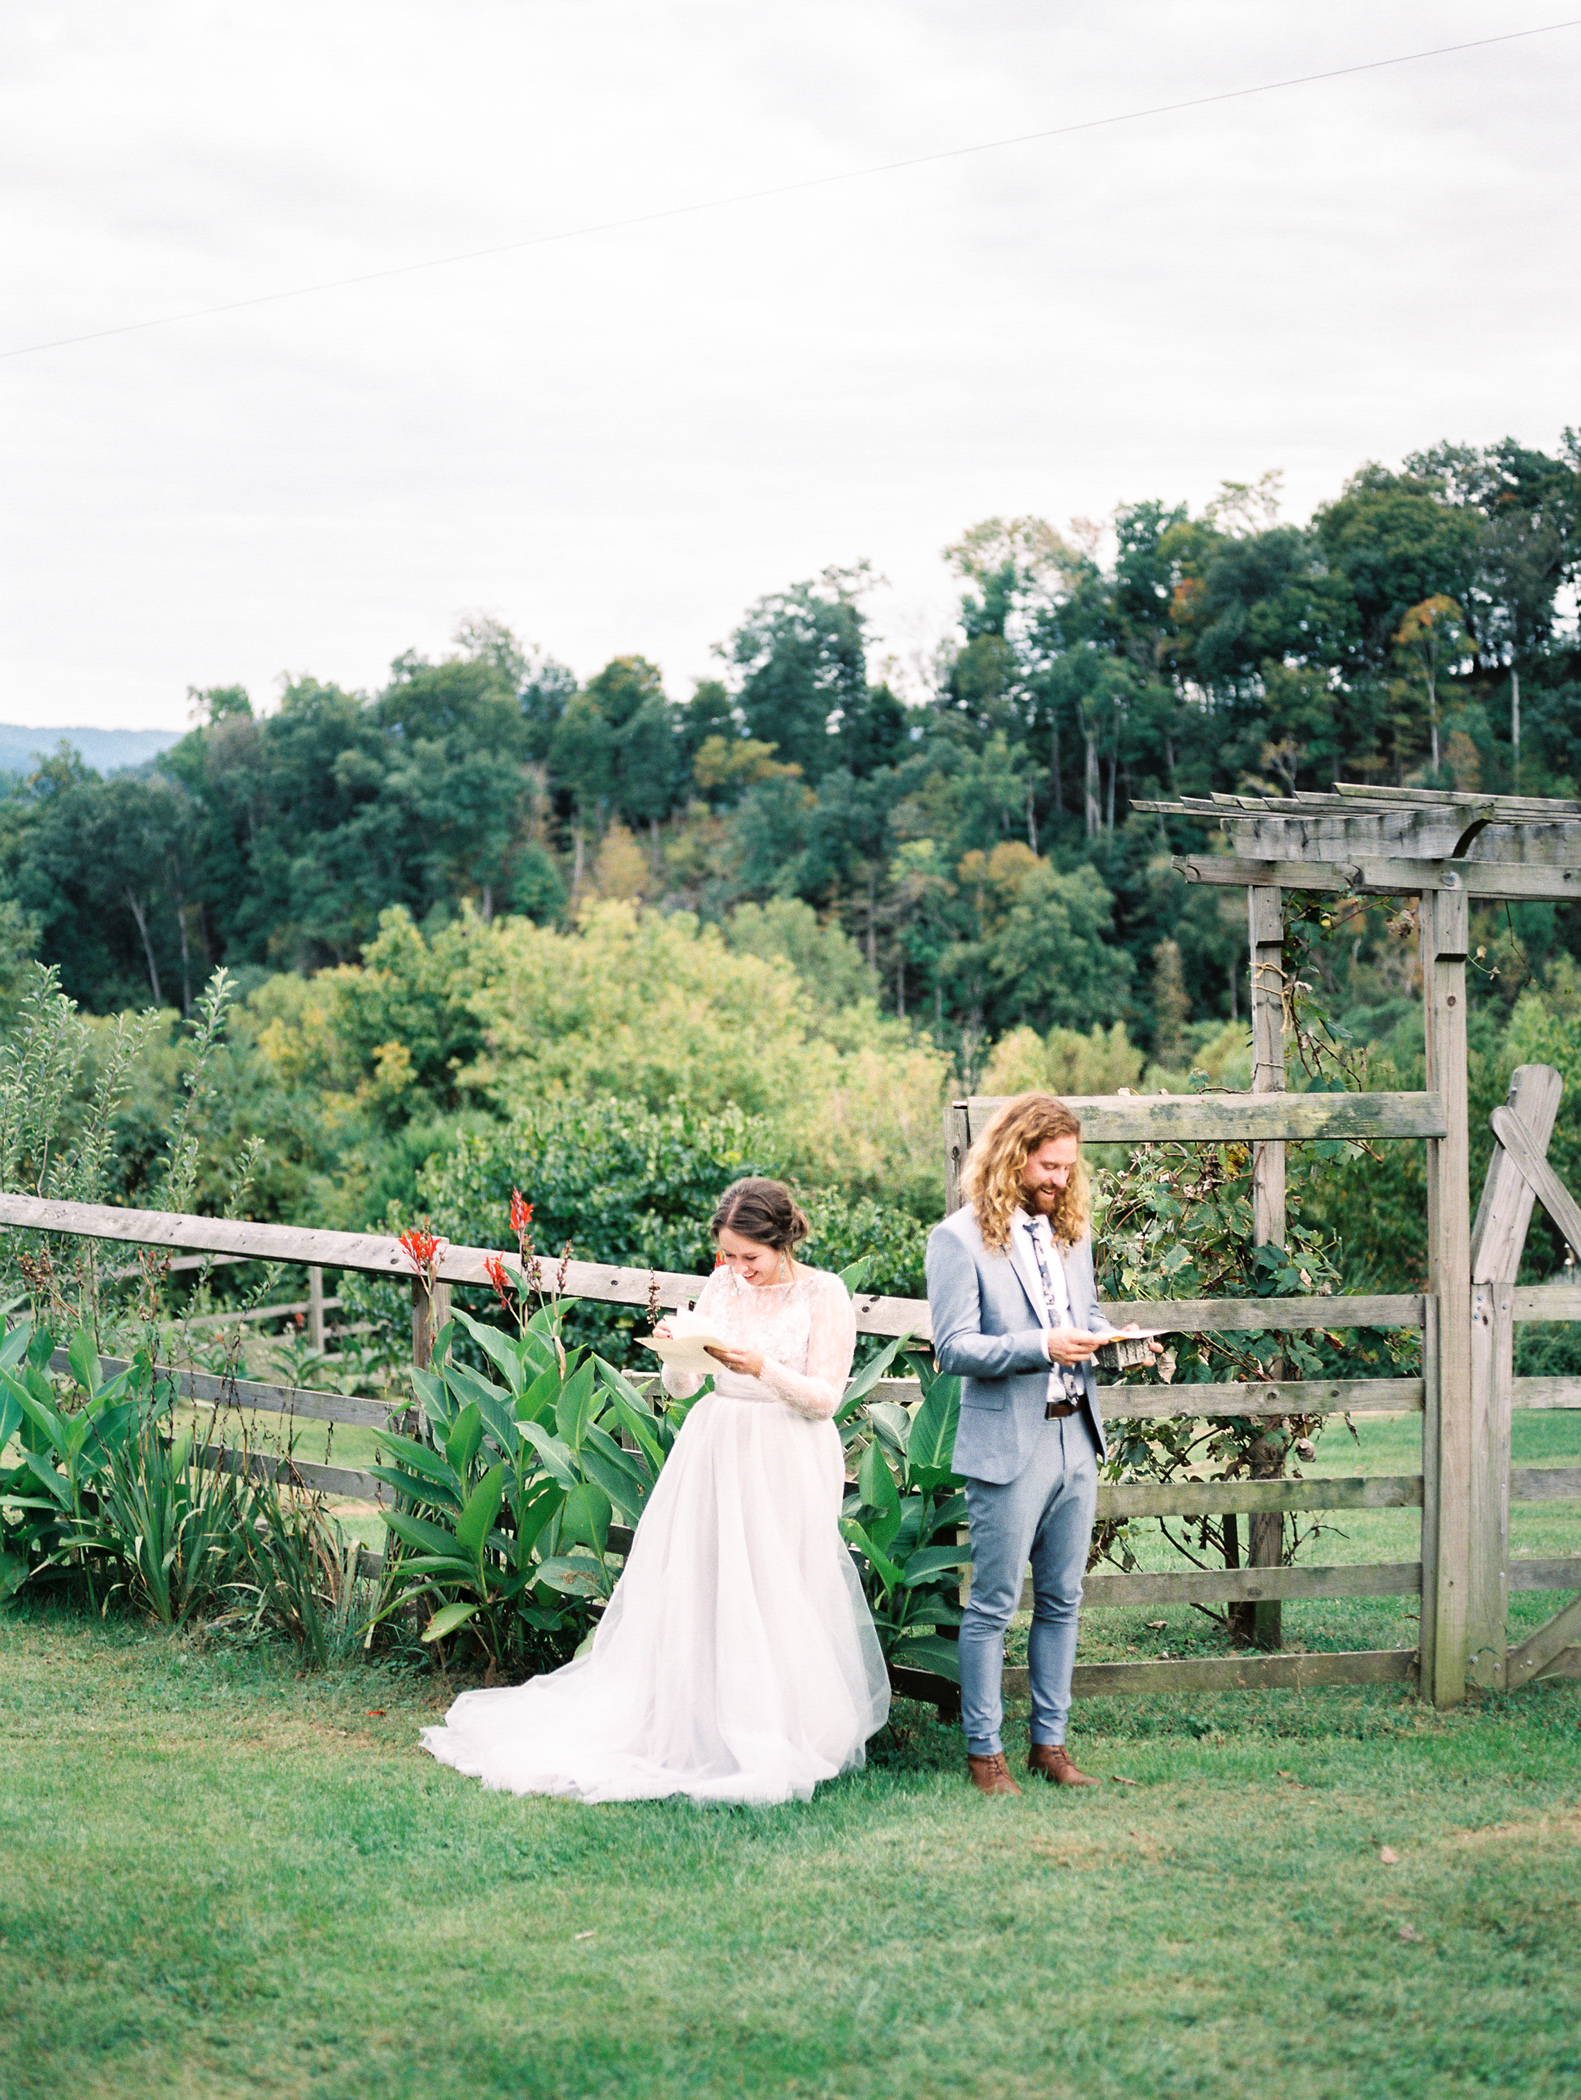 Charlotte-Film-Wedding_Photographer-heartstone-lodge-virginia-11.jpg